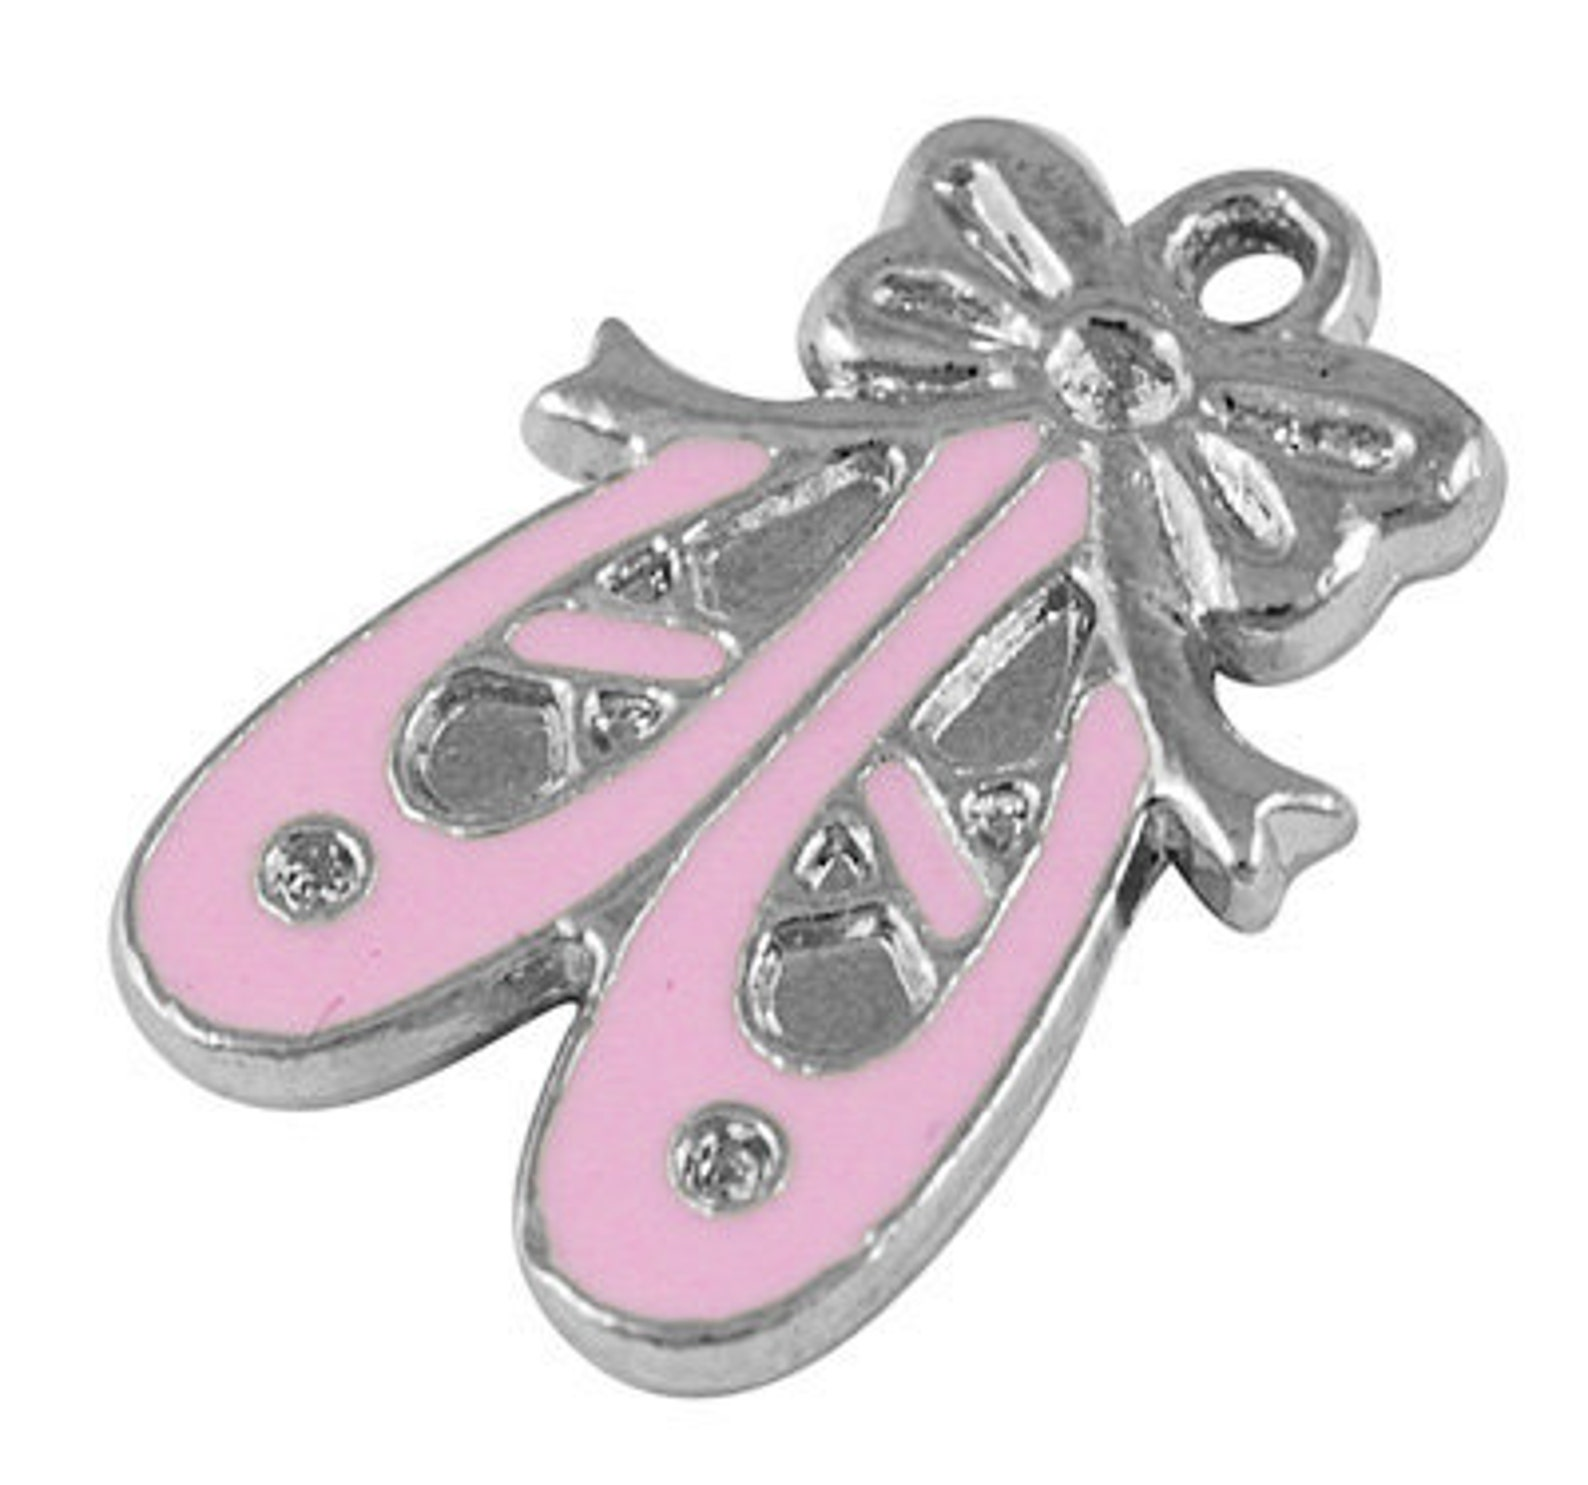 4 pink enamel and silver metal ballet shoes charm pendants. che0034